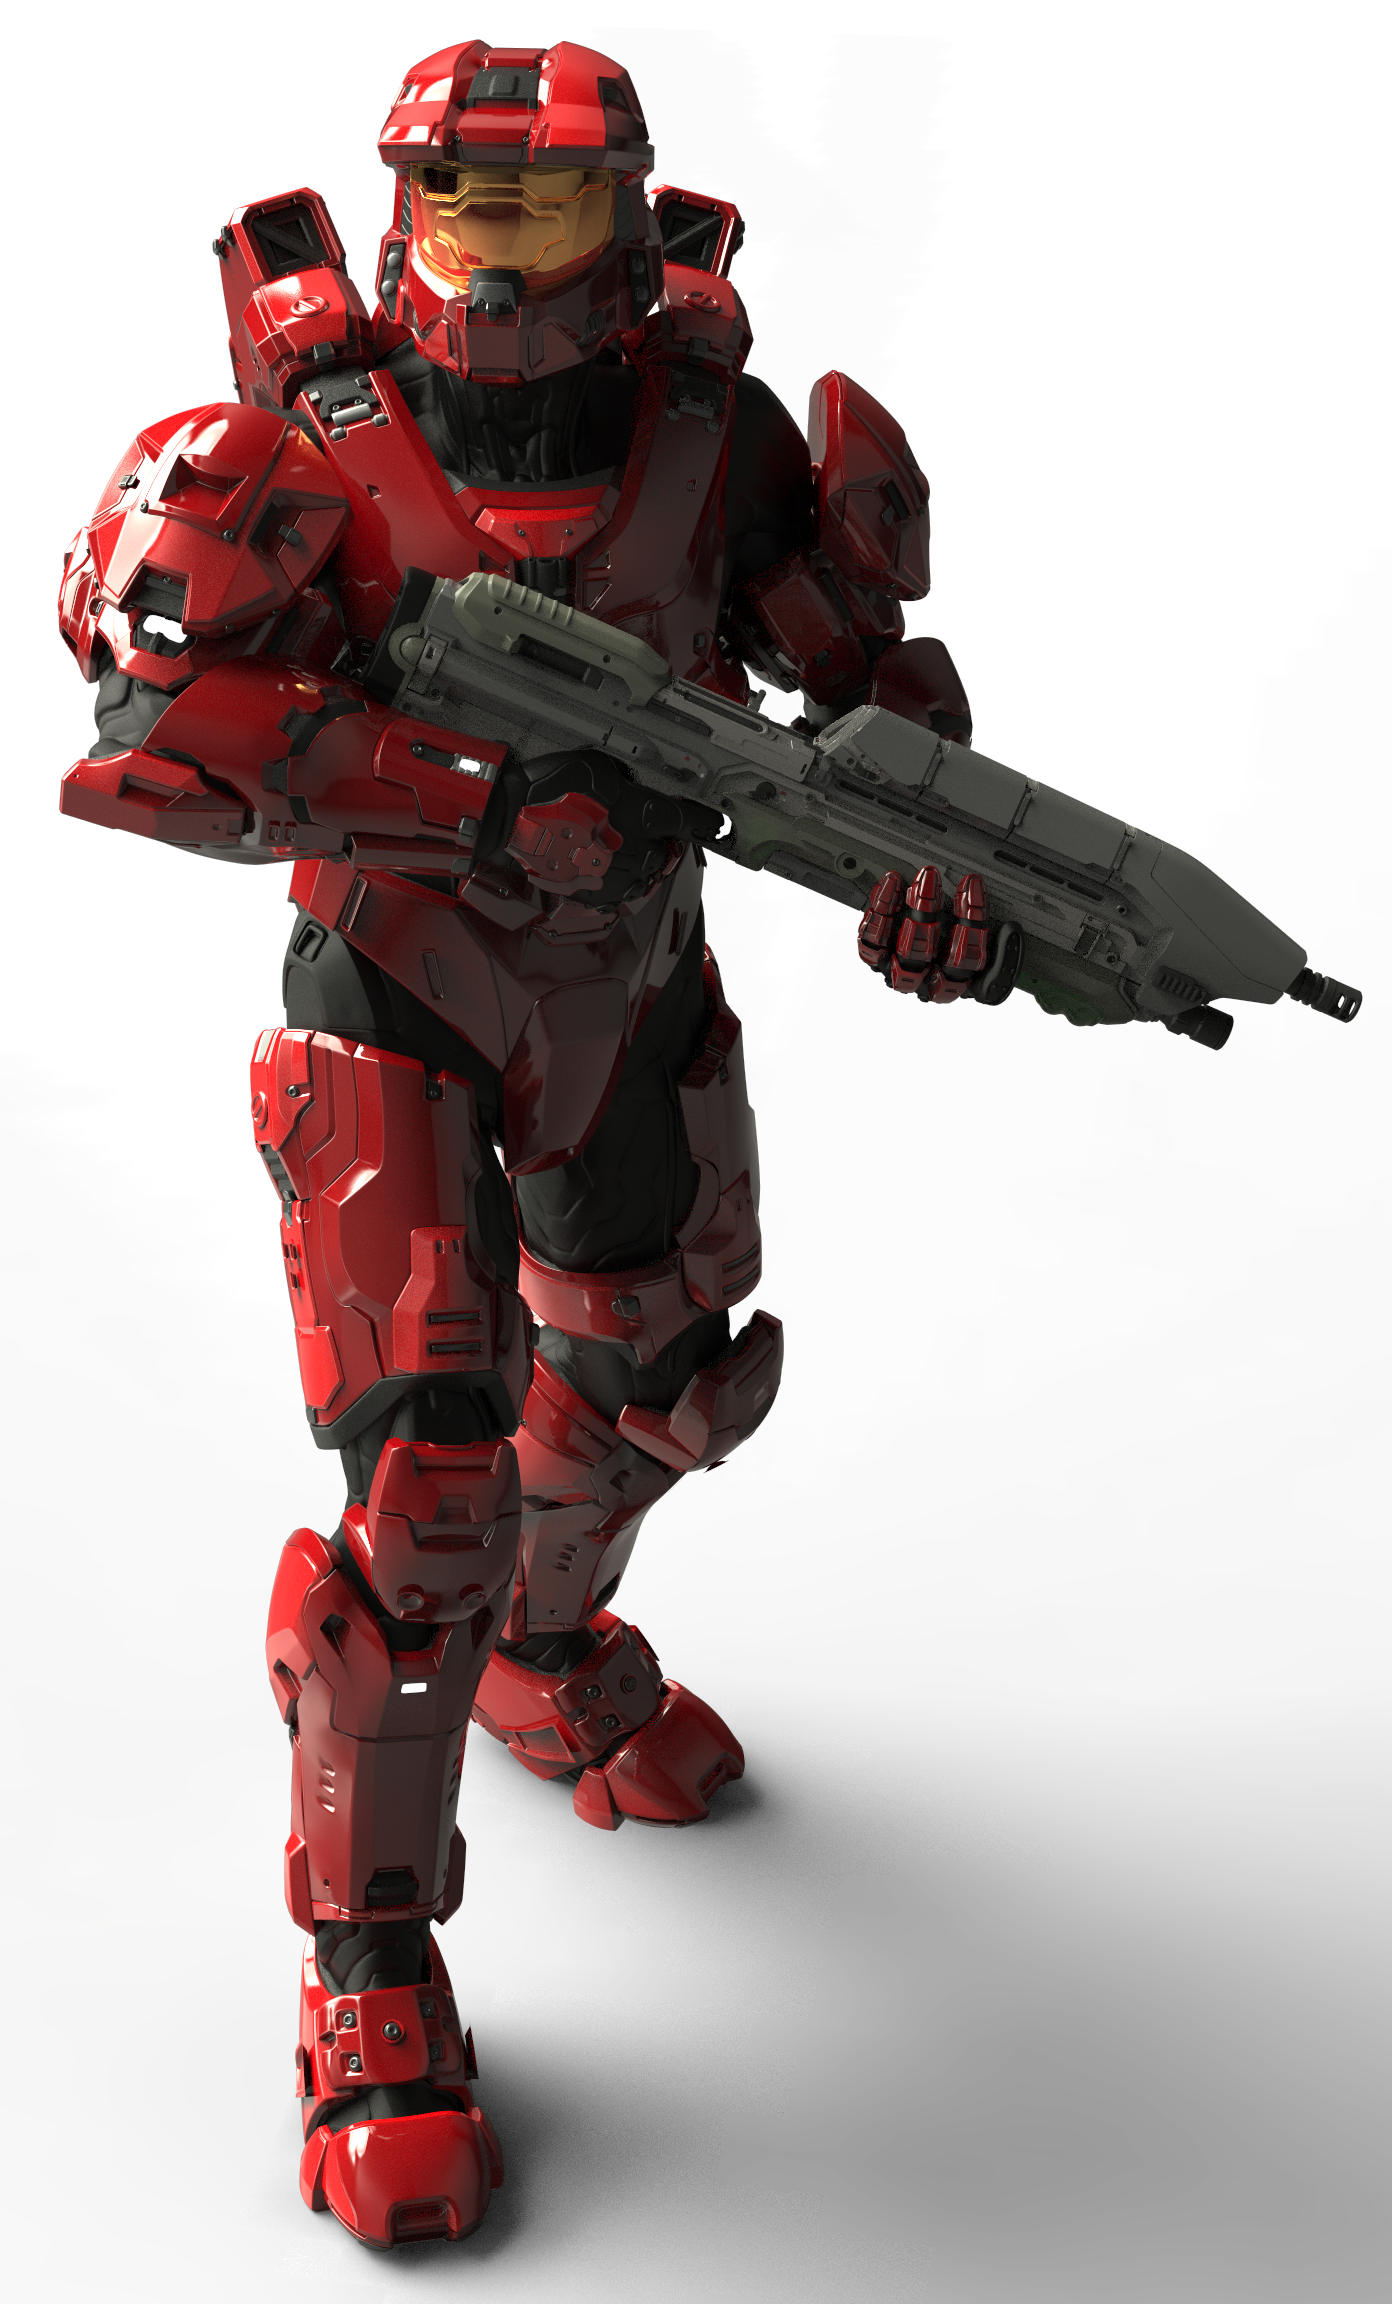 halo 5 guardians armor mark vi gen1 is this what the new. Black Bedroom Furniture Sets. Home Design Ideas